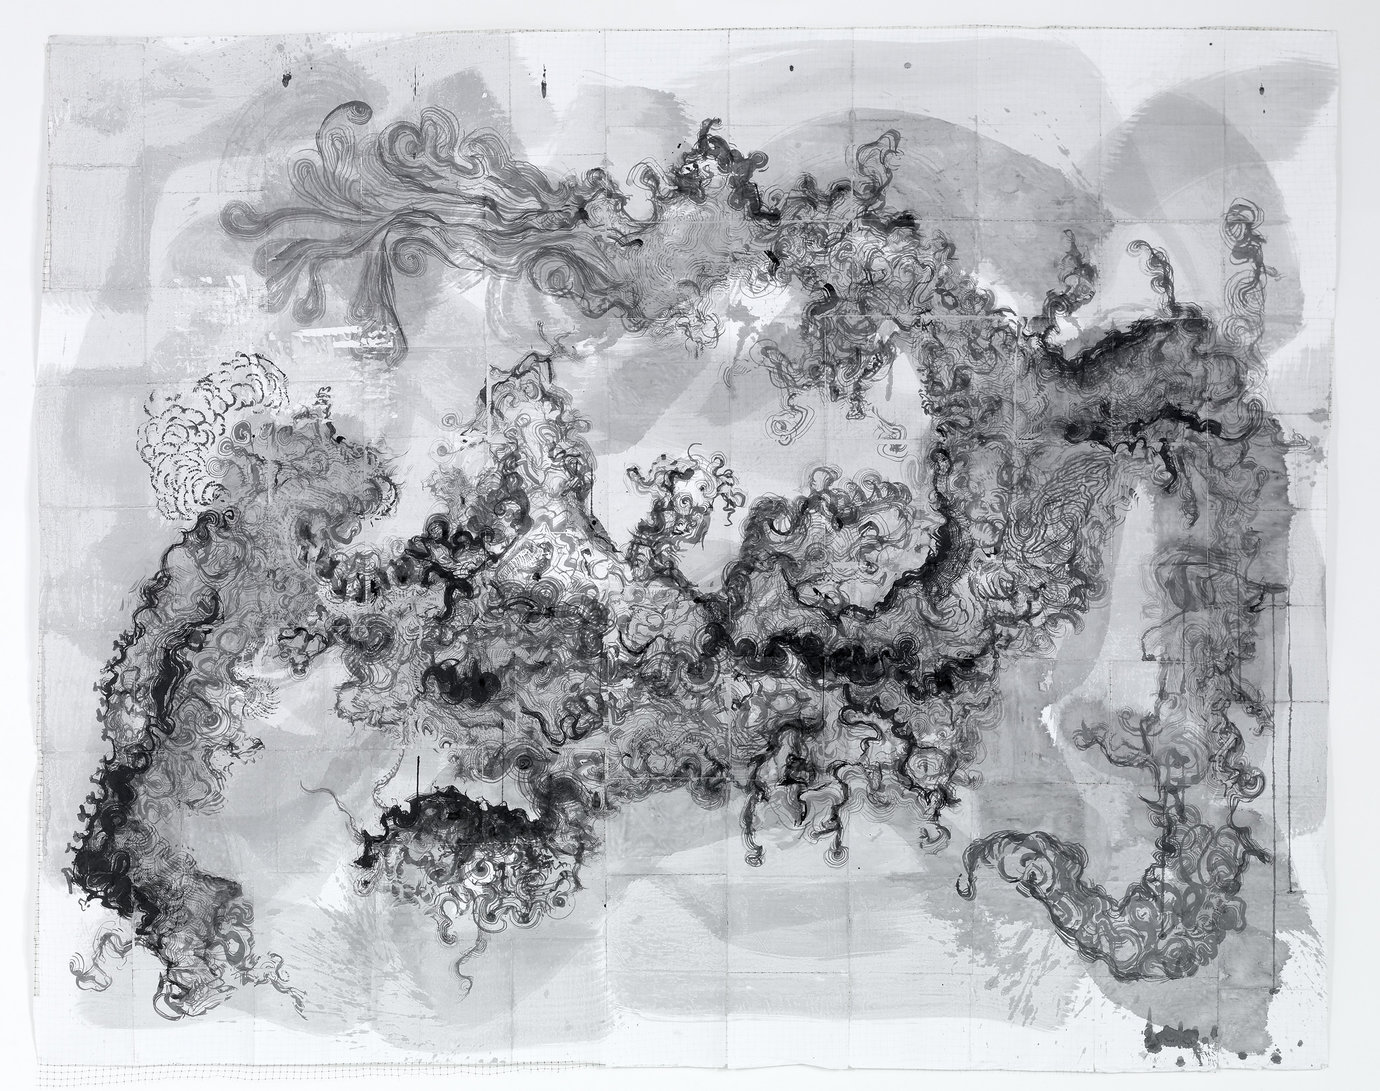 ", 2007. Ink on paper over netting, 7&apos; 8"" x 9&apos; 4"" (233.7 cm x 284.5 cm)."